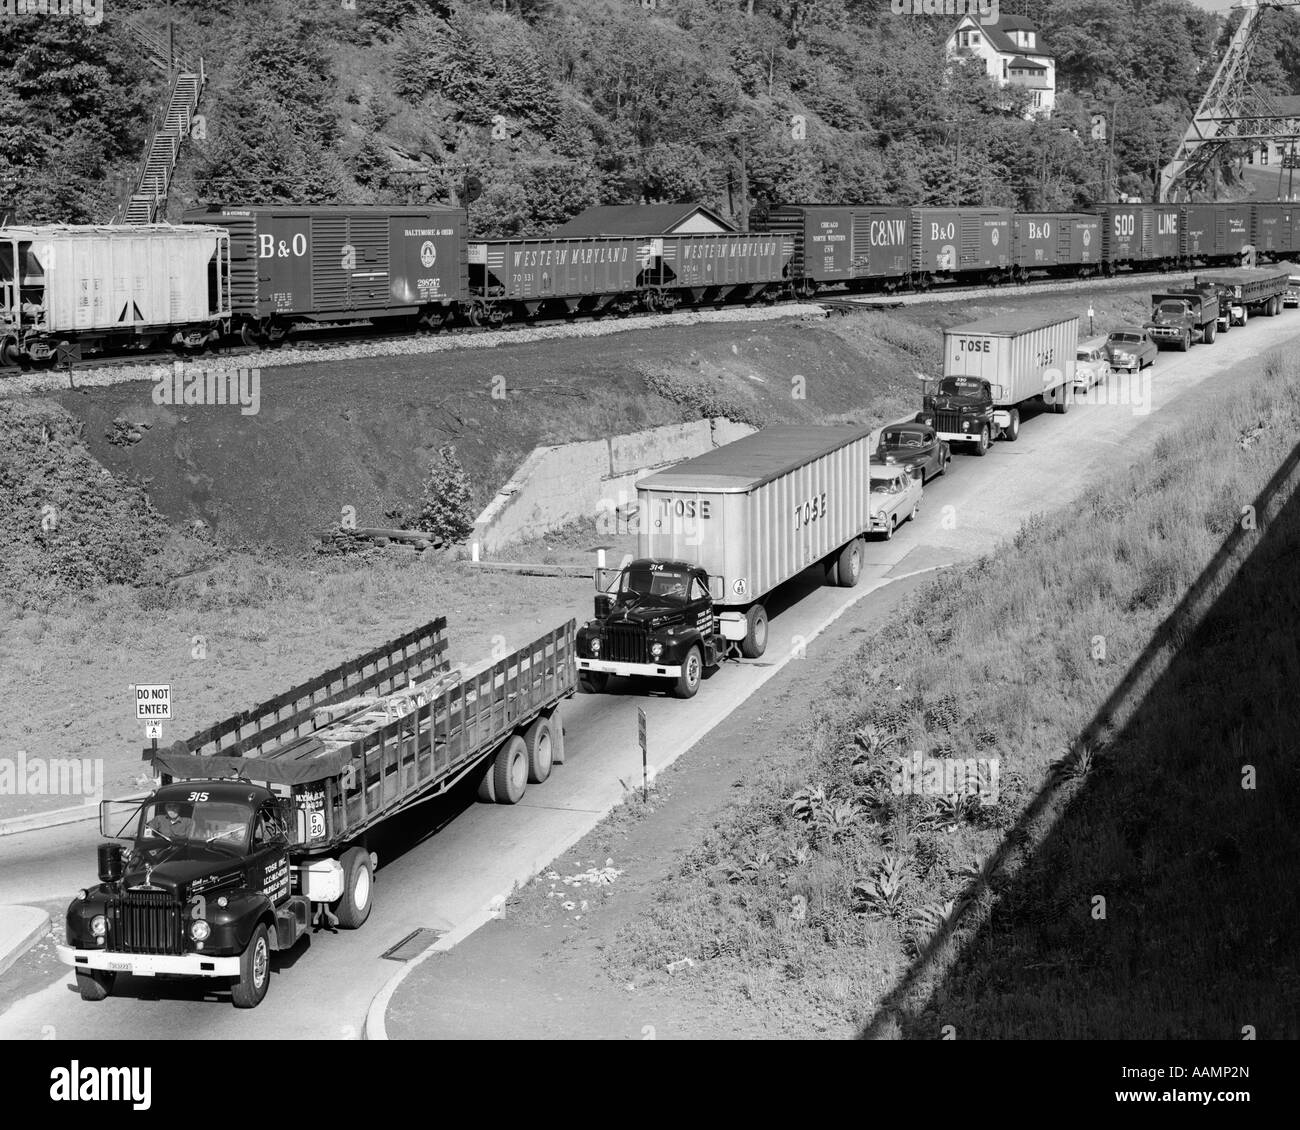 1950s LINE OF TRAFFIC WITH MANY TRUCKS & CARS & FREIGHT TRAIN PASSING ON ADJACENT HILLSIDE - Stock Image